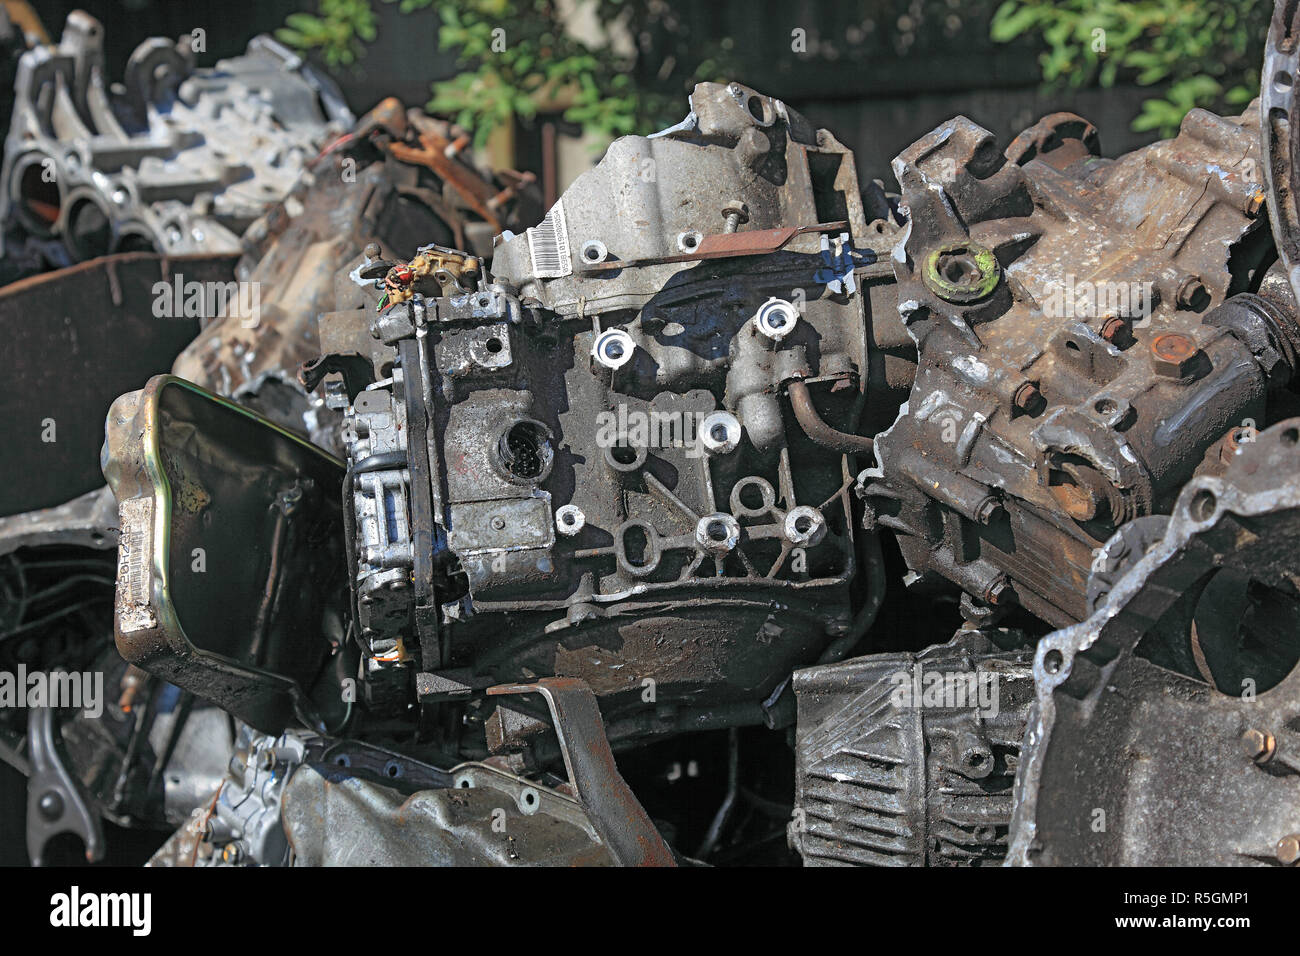 Scrap yard, old car transmission, metal waste in a recycling plant, Germany - Stock Image